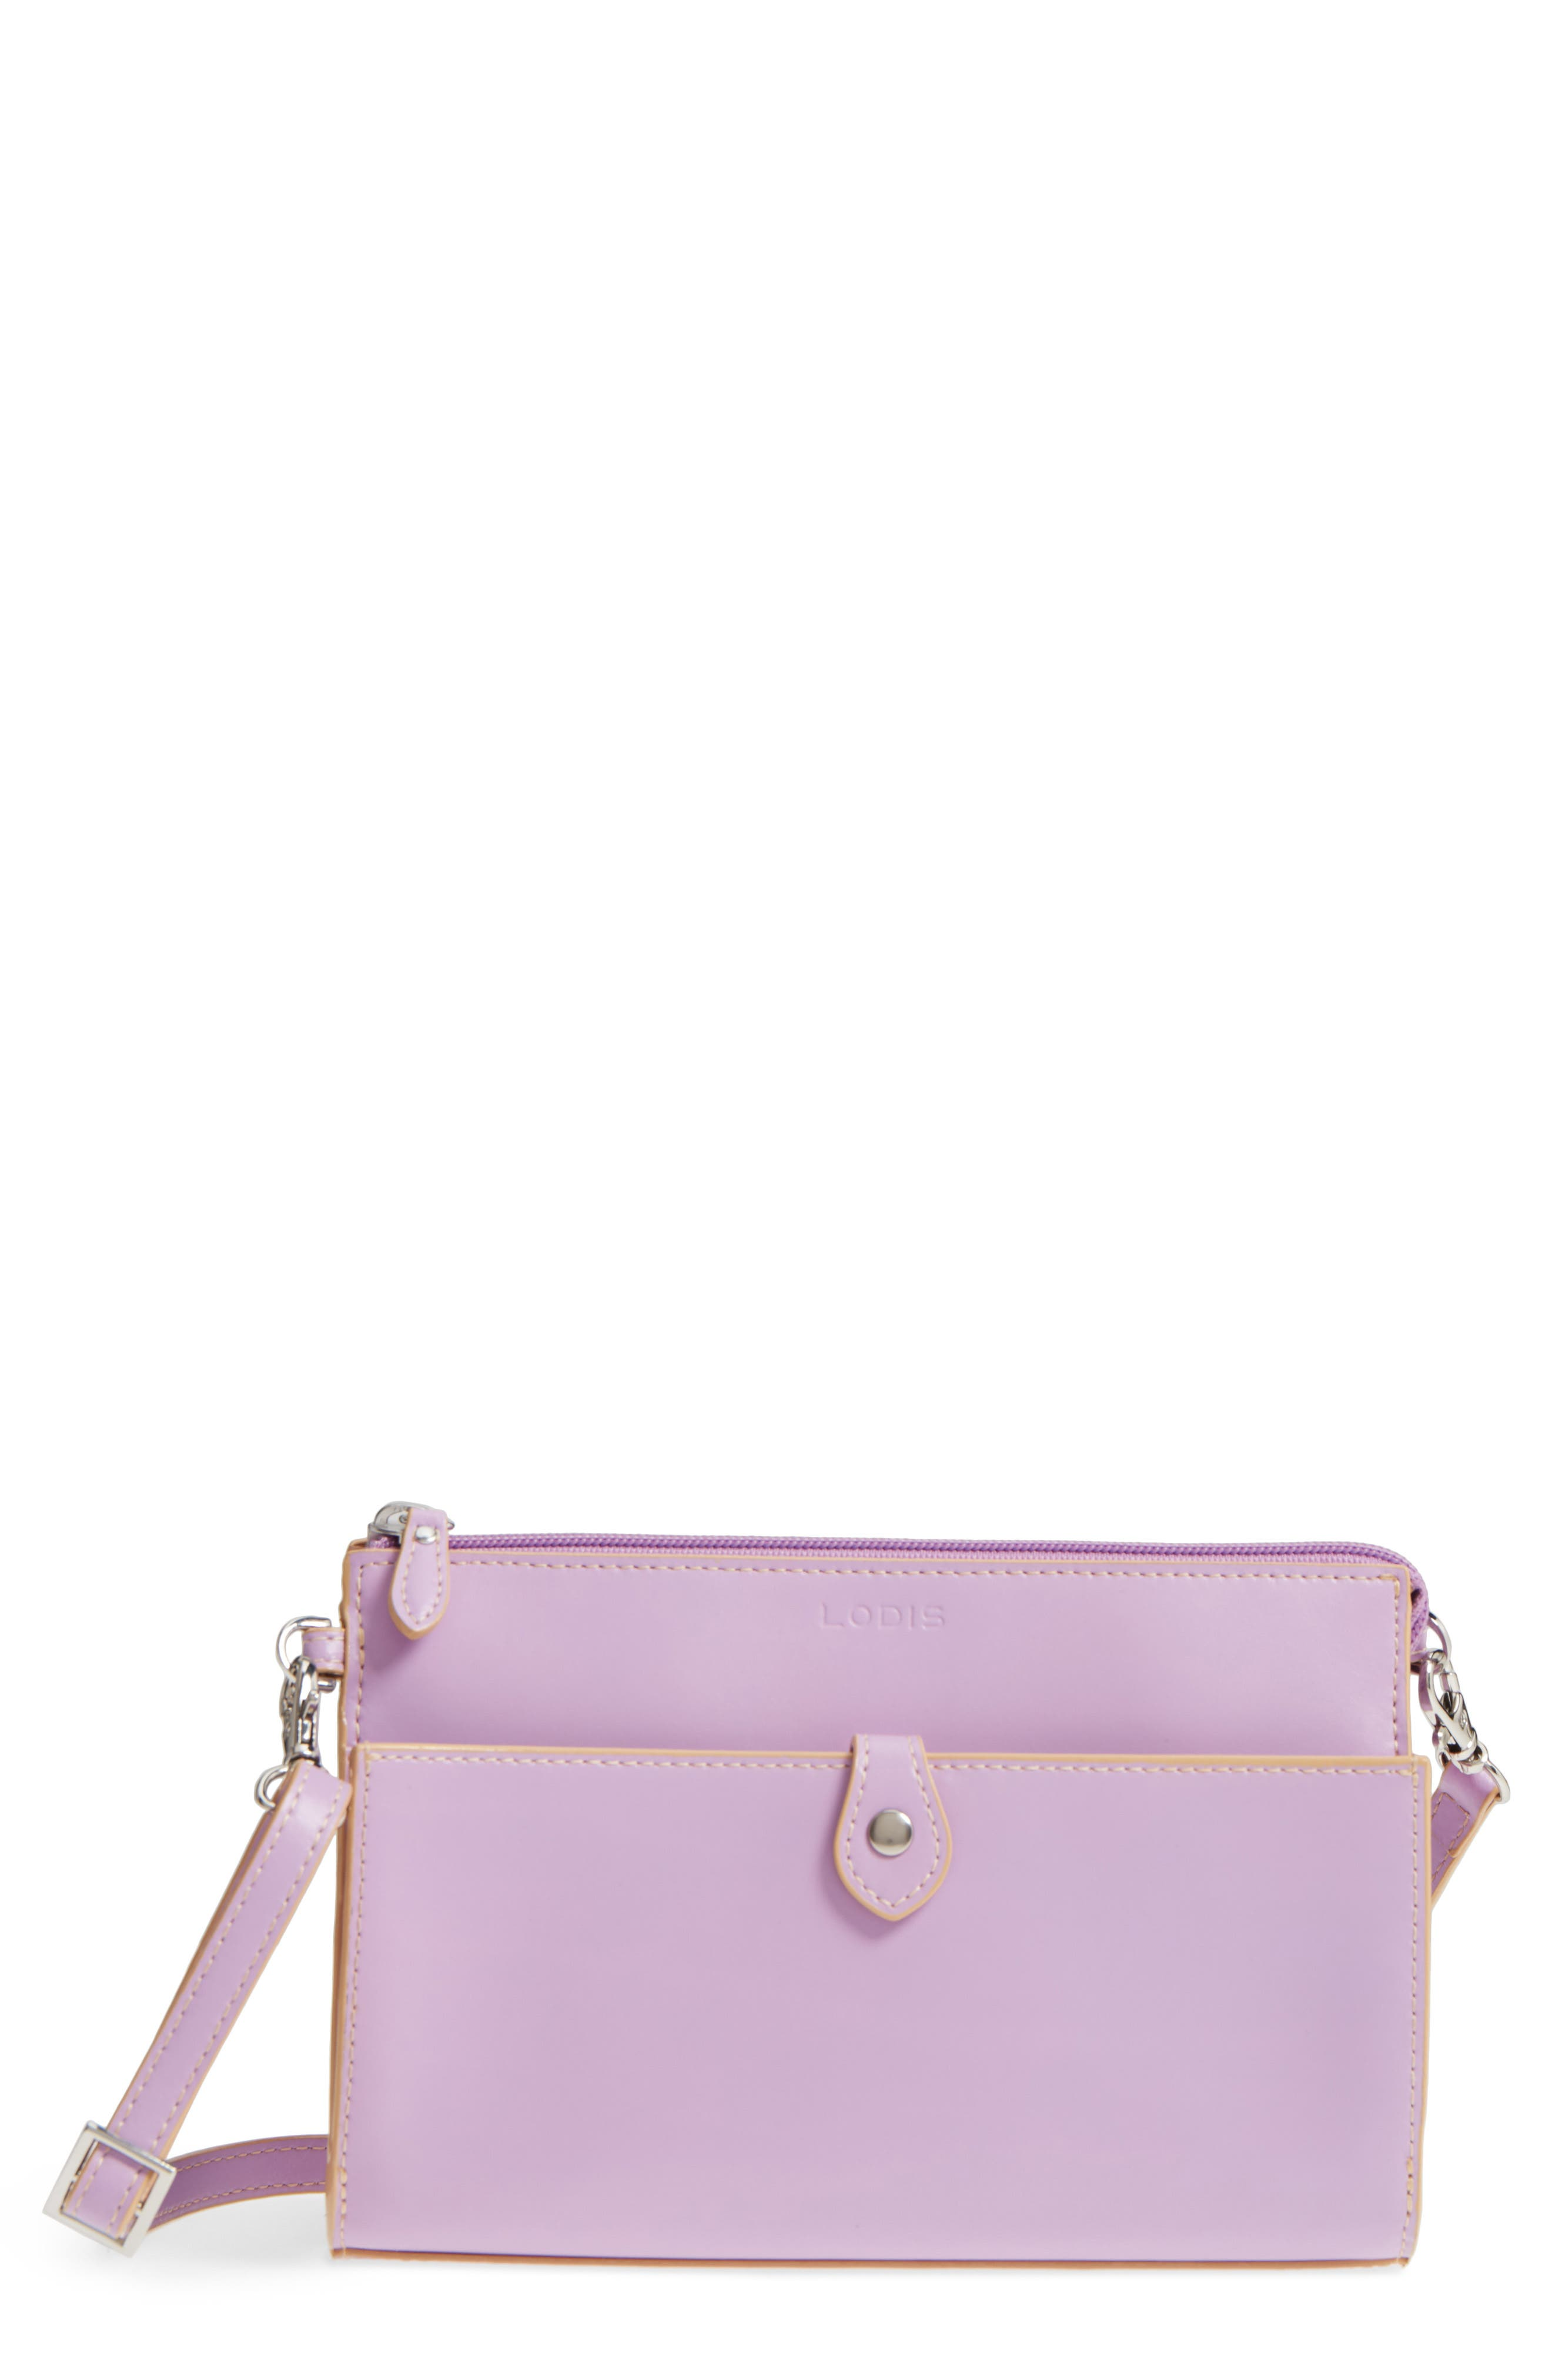 Alternate Image 1 Selected - LODIS Los Angeles Audrey Under Lock & Key Vicky Convertible Leather Crossbody Bag